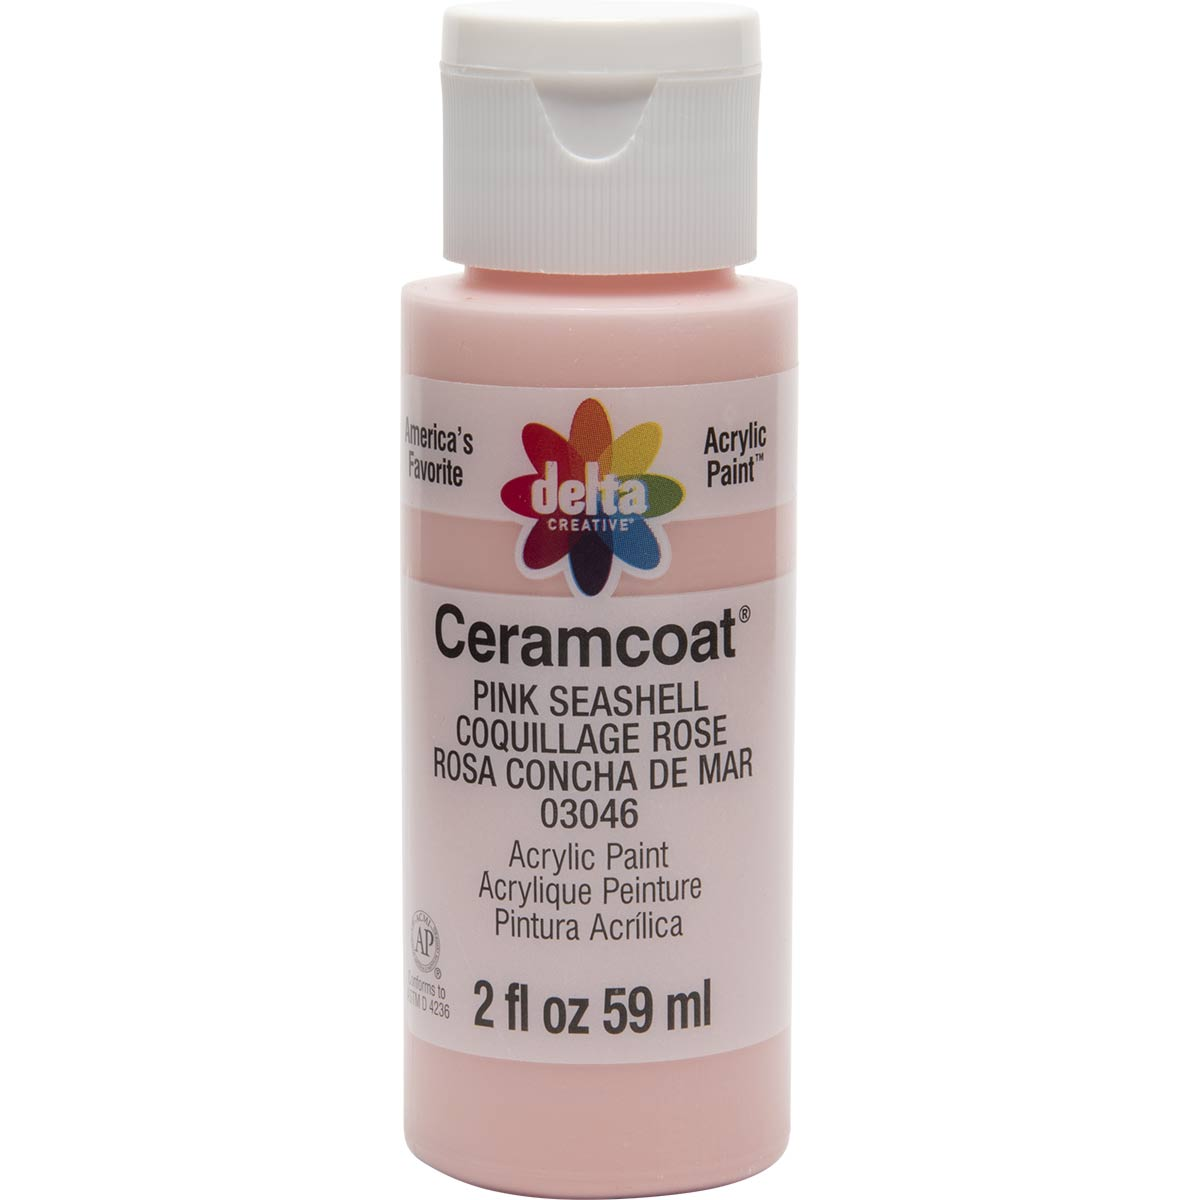 Delta Ceramcoat ® Acrylic Paint - Pink Seashell, 2 oz.